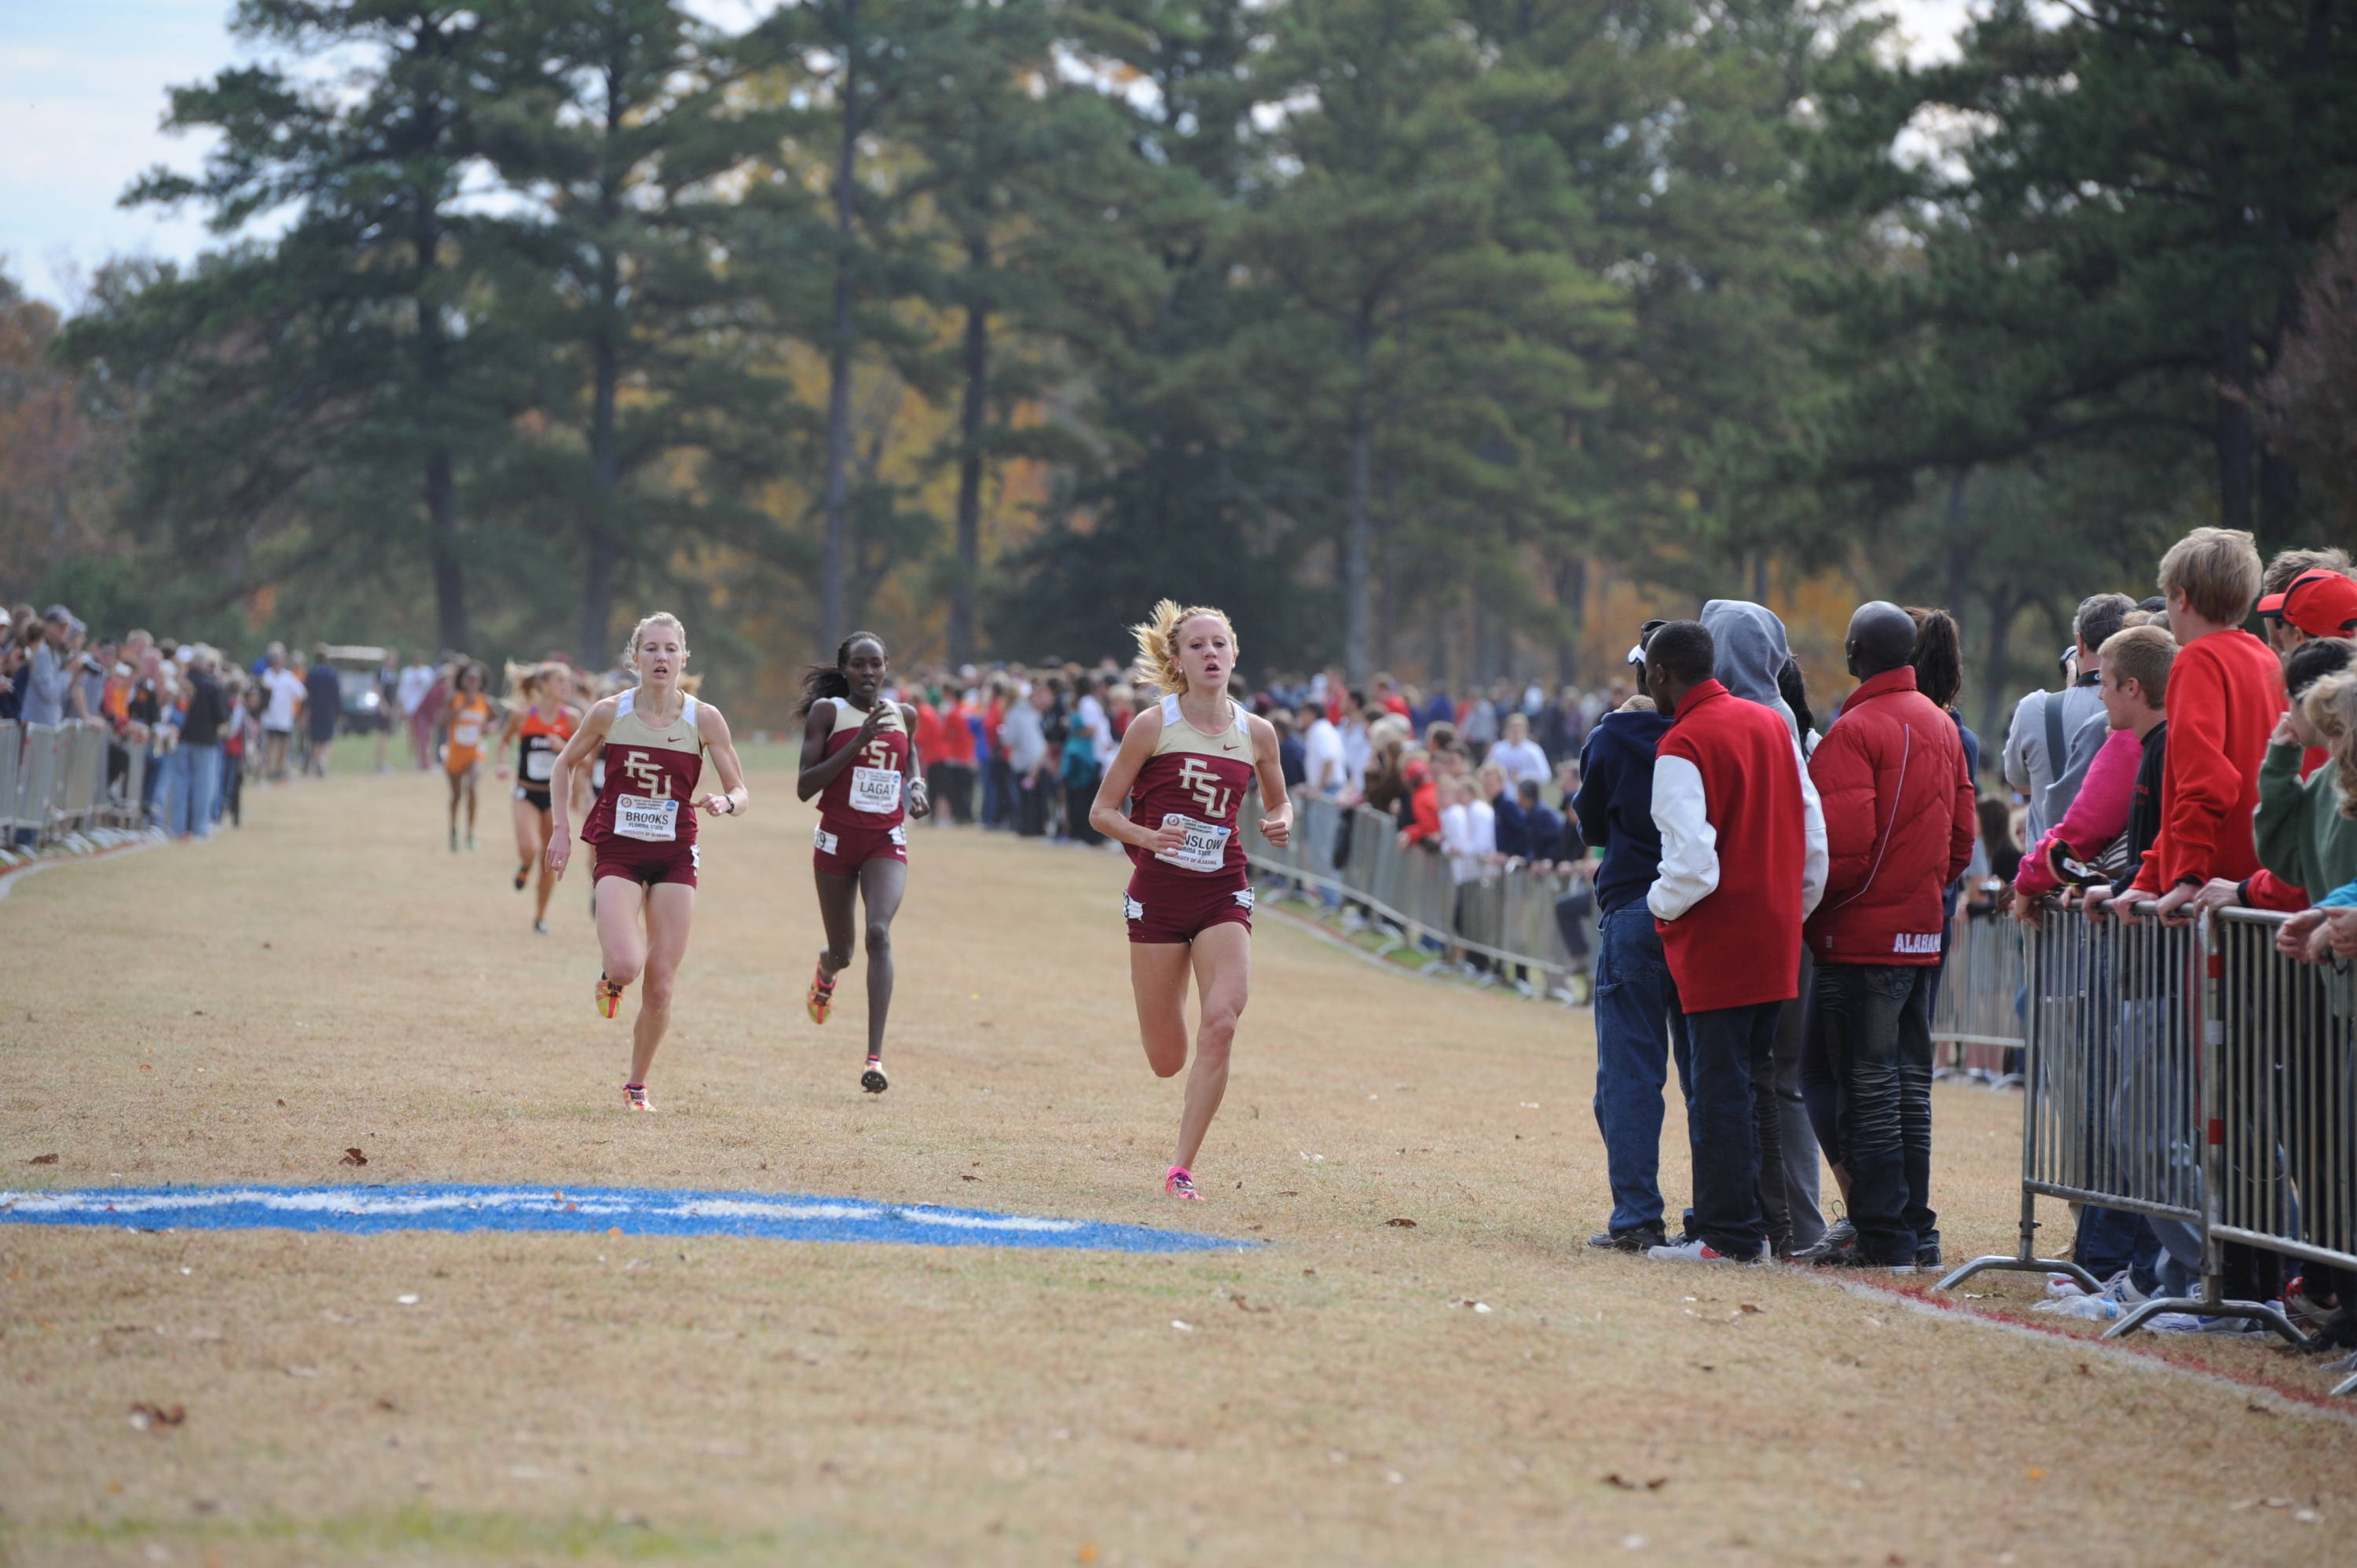 Amanda Winslow, Hannah Brooks and Violah Lagat lead a 1-2-3 finish by the top-ranked Florida State women at the NCAA South Region.